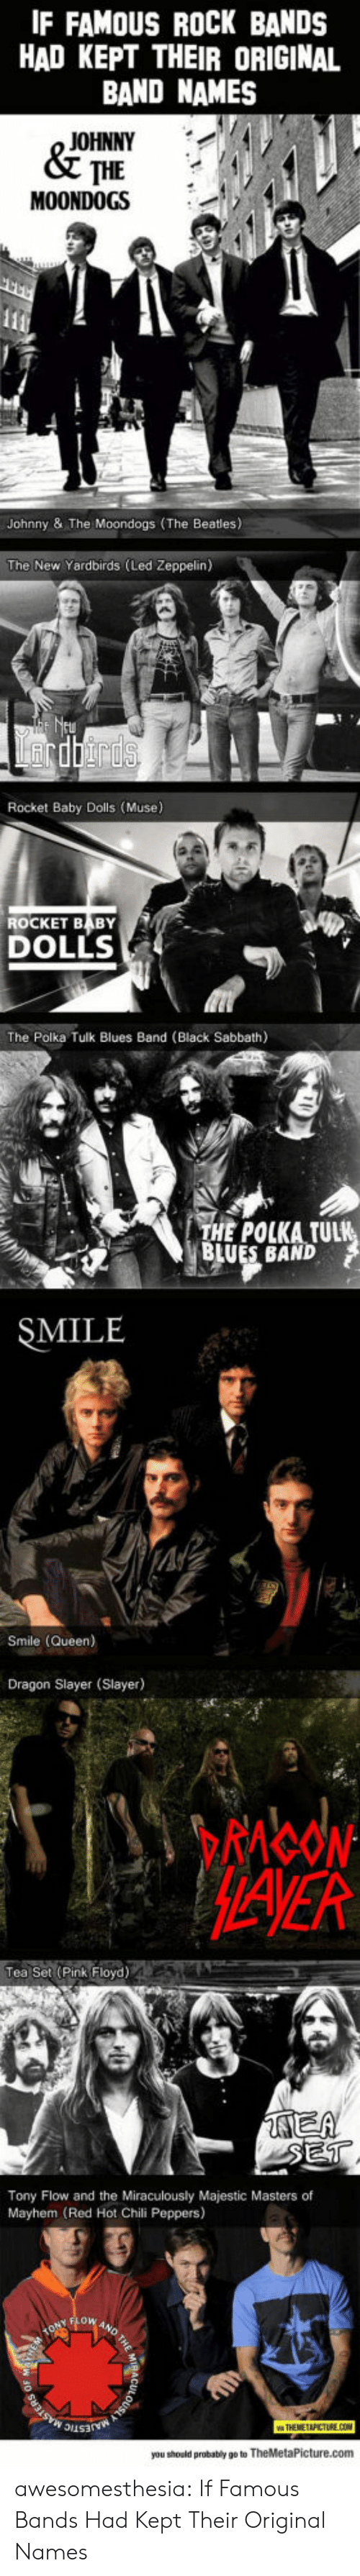 Pink Floyd: IF FAMOUS ROCK BANDS  HAD KEPT THEIR ORIGINAL  BAND NAMES  JOHNNY  & THE  MOONDOGS  111  Johnny & The Moondogs (The Beatles)  The New Yardbirds (Led Zeppelin)  rdrds  Rocket Baby Dolls (Muse)  ROCKET BABY  DOLLS  The Polka Tulk Blues Band (Black Sabbath)  THE POLKA TULK  BLUES BAND  SMILE  Smile (Queen)  Dragon Slayer (Slayer)  MAVER  Tea Set (Pink Floyd)  AEA  SET  Tony Flow and the Miraculously Majestic Masters of  Mayhem (Red Hot Chili Peppers)  ONYOW AND  MAJESTIC  MASTERS  you should probably go to TheMetaPicture.com awesomesthesia:  If Famous Bands Had Kept Their Original Names